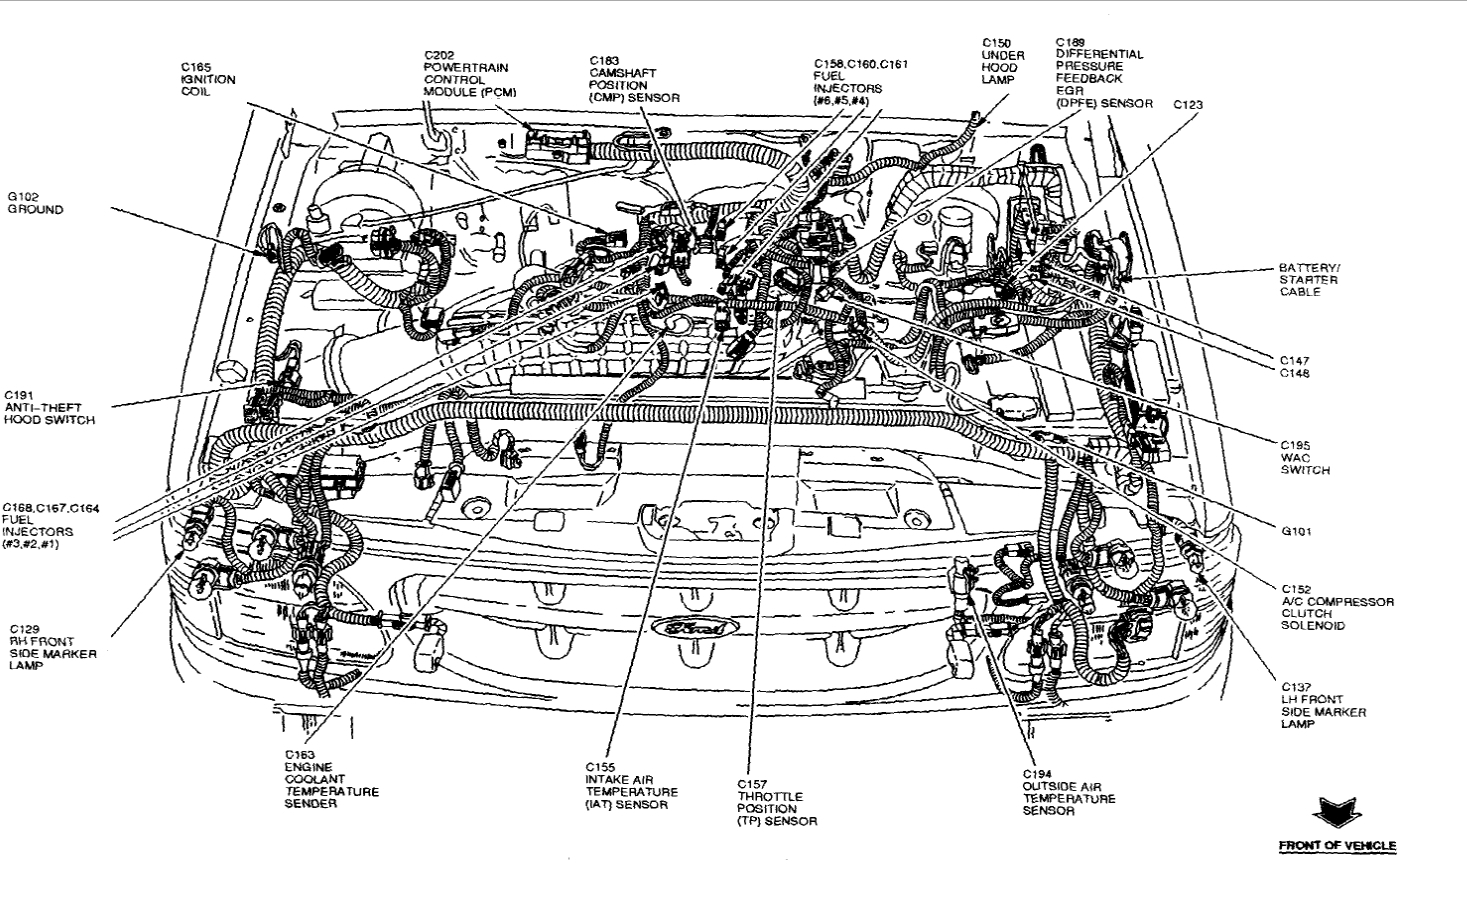 1998 Ford Explorer Flasher Wiring Diagram - Wiring Diagram